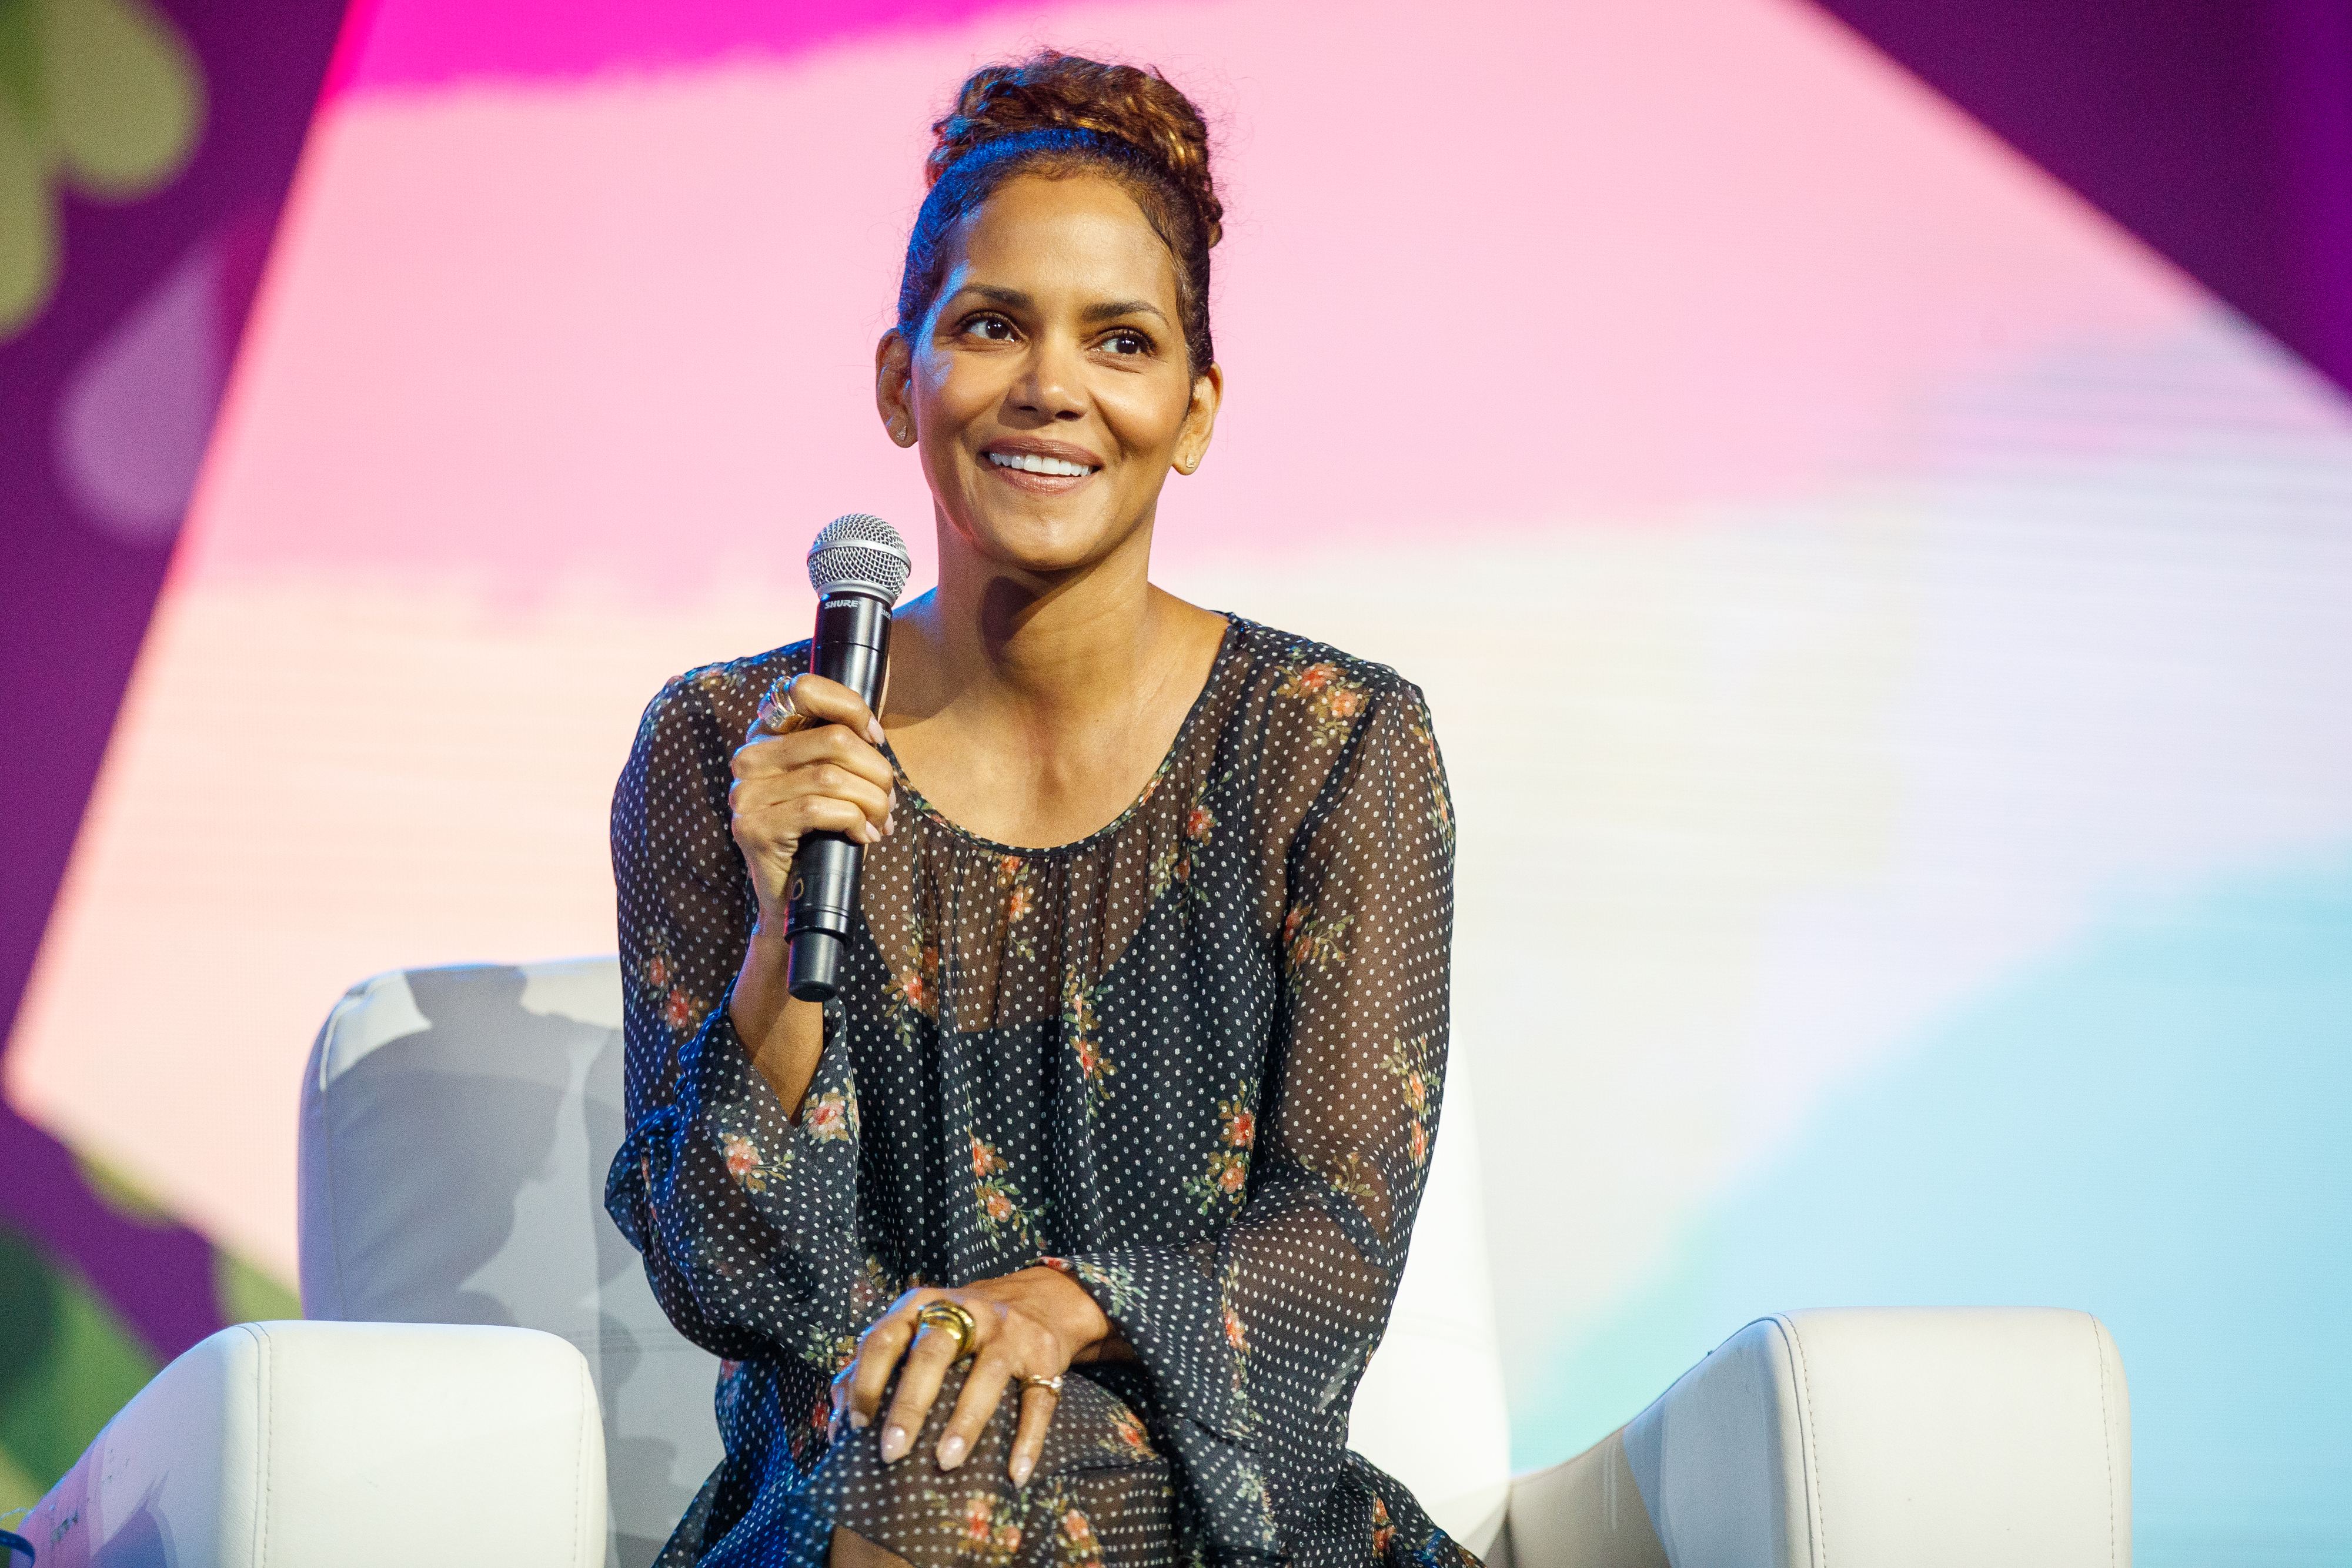 If Halle Berry could play anybody in a movie it would be this political activist, so let's make it happen